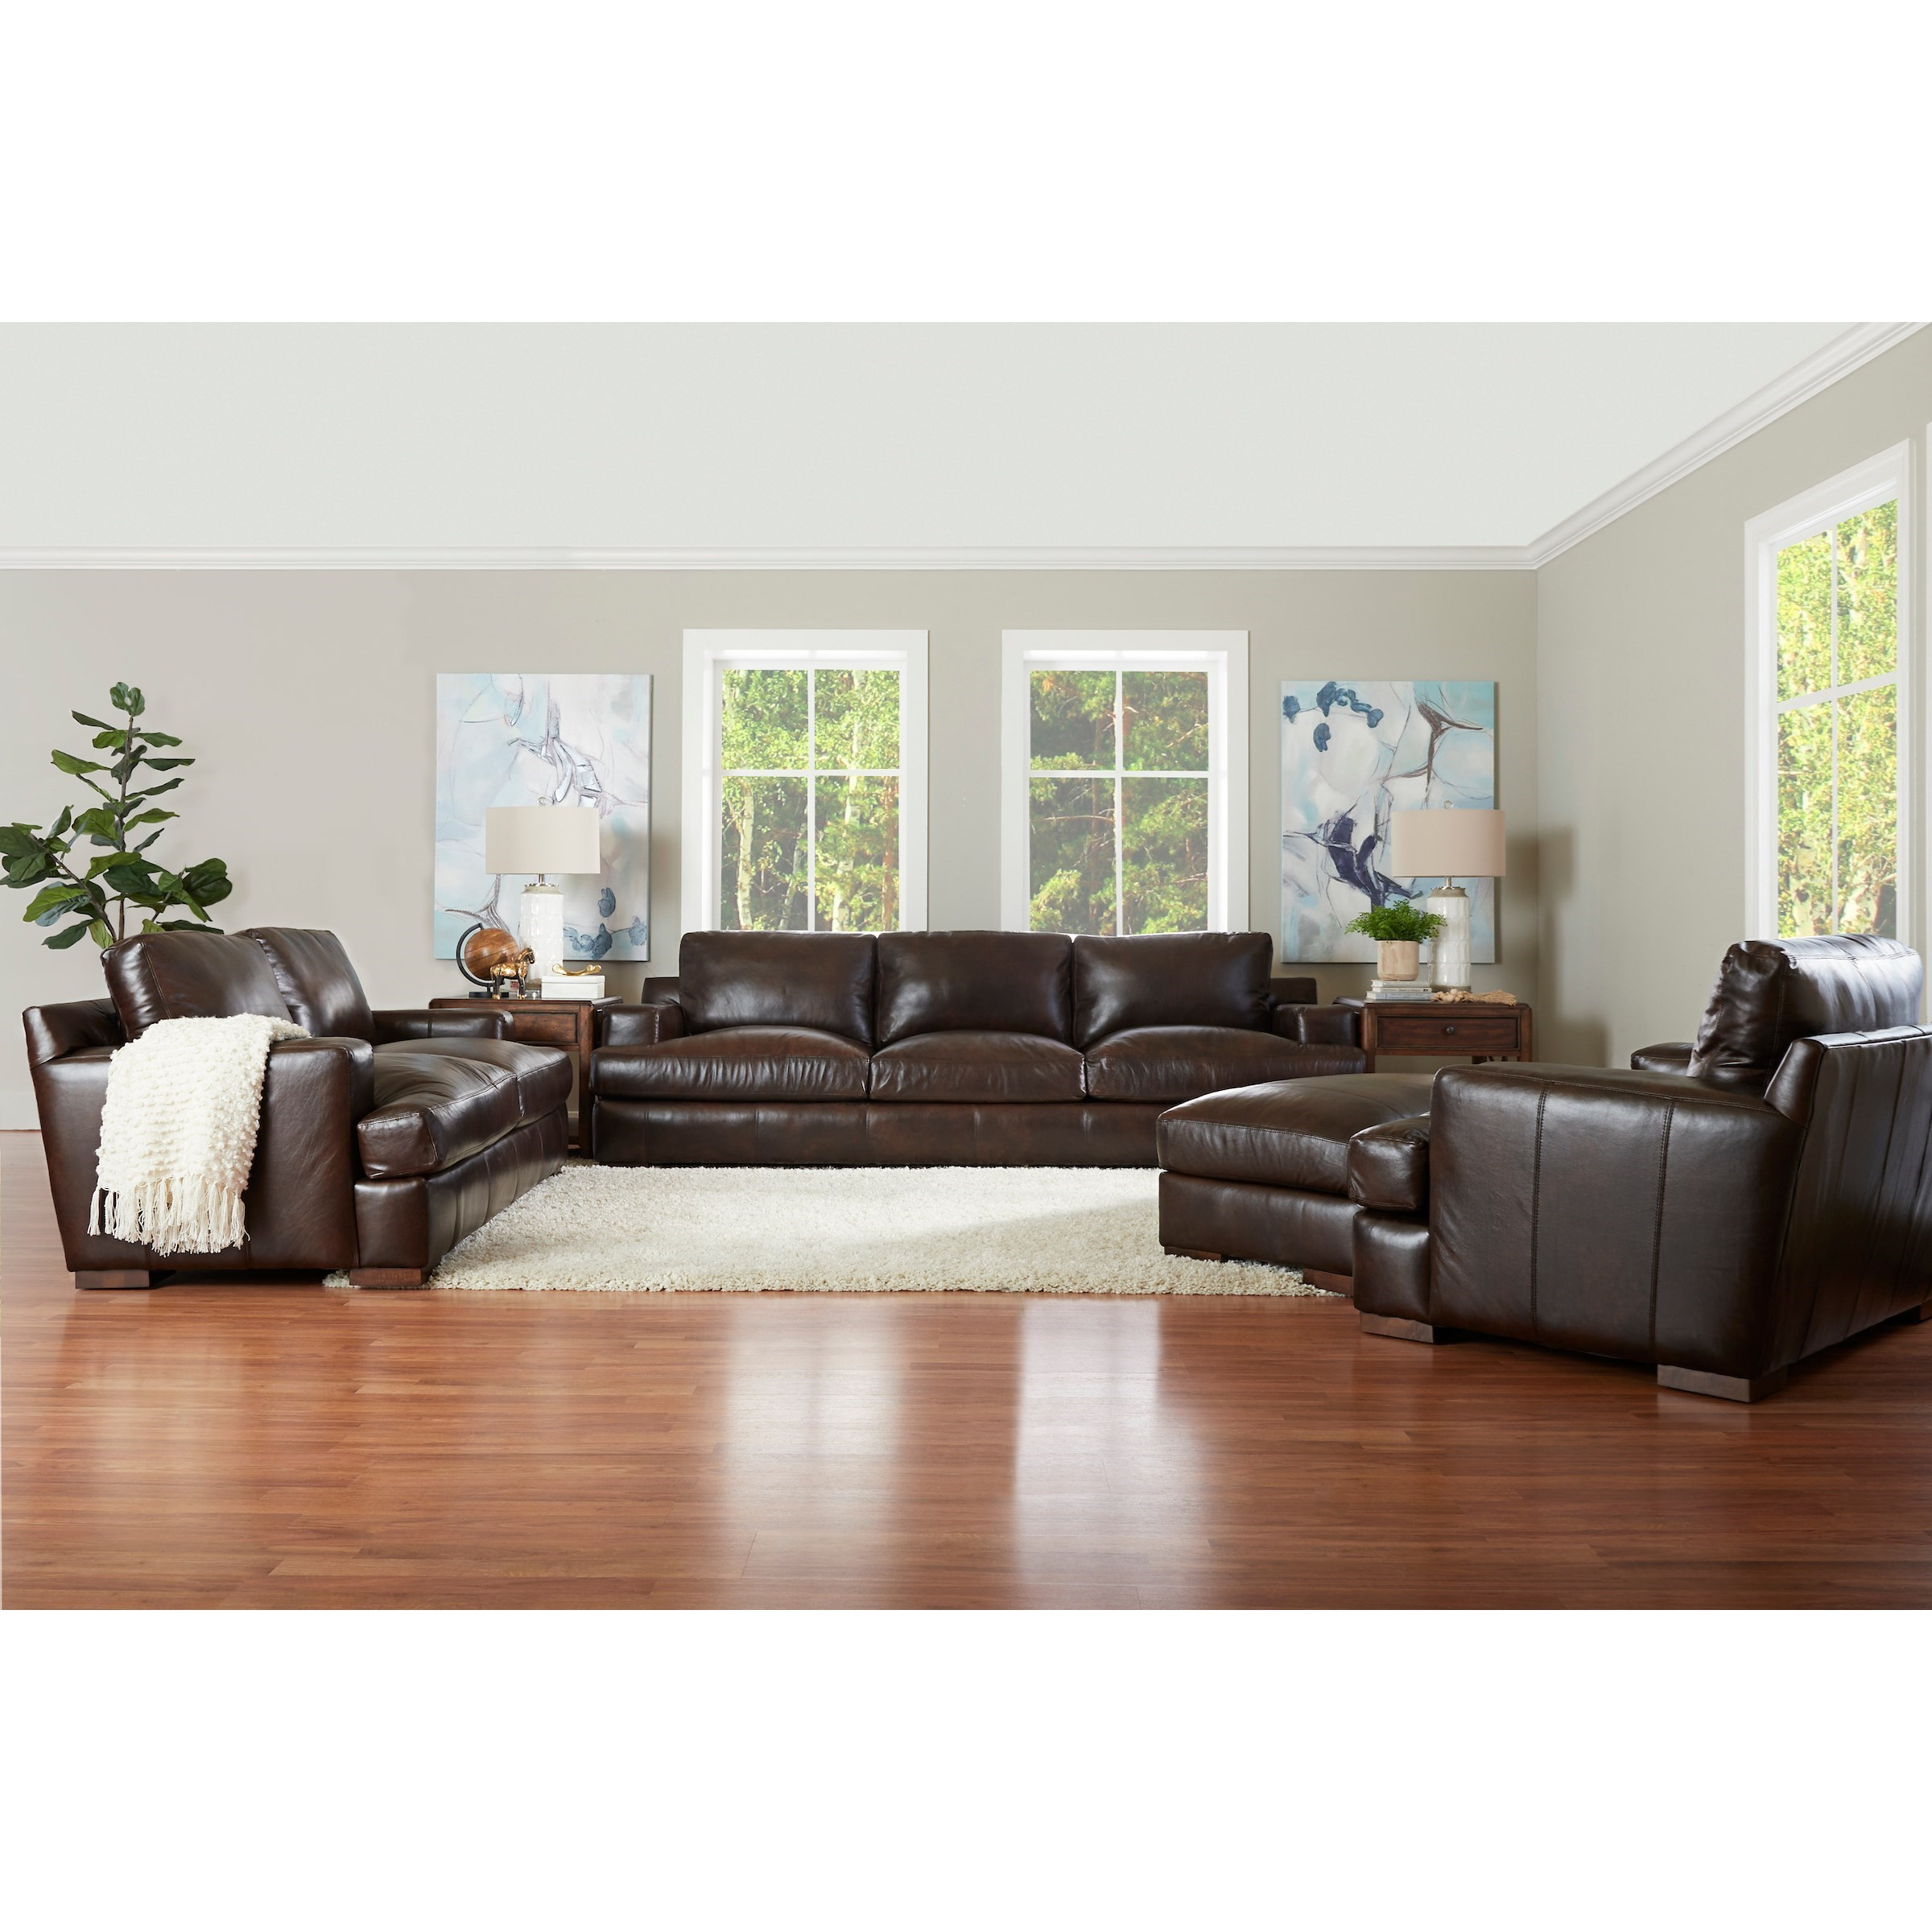 Lyon Living Room Group by Klaussner at Northeast Factory Direct